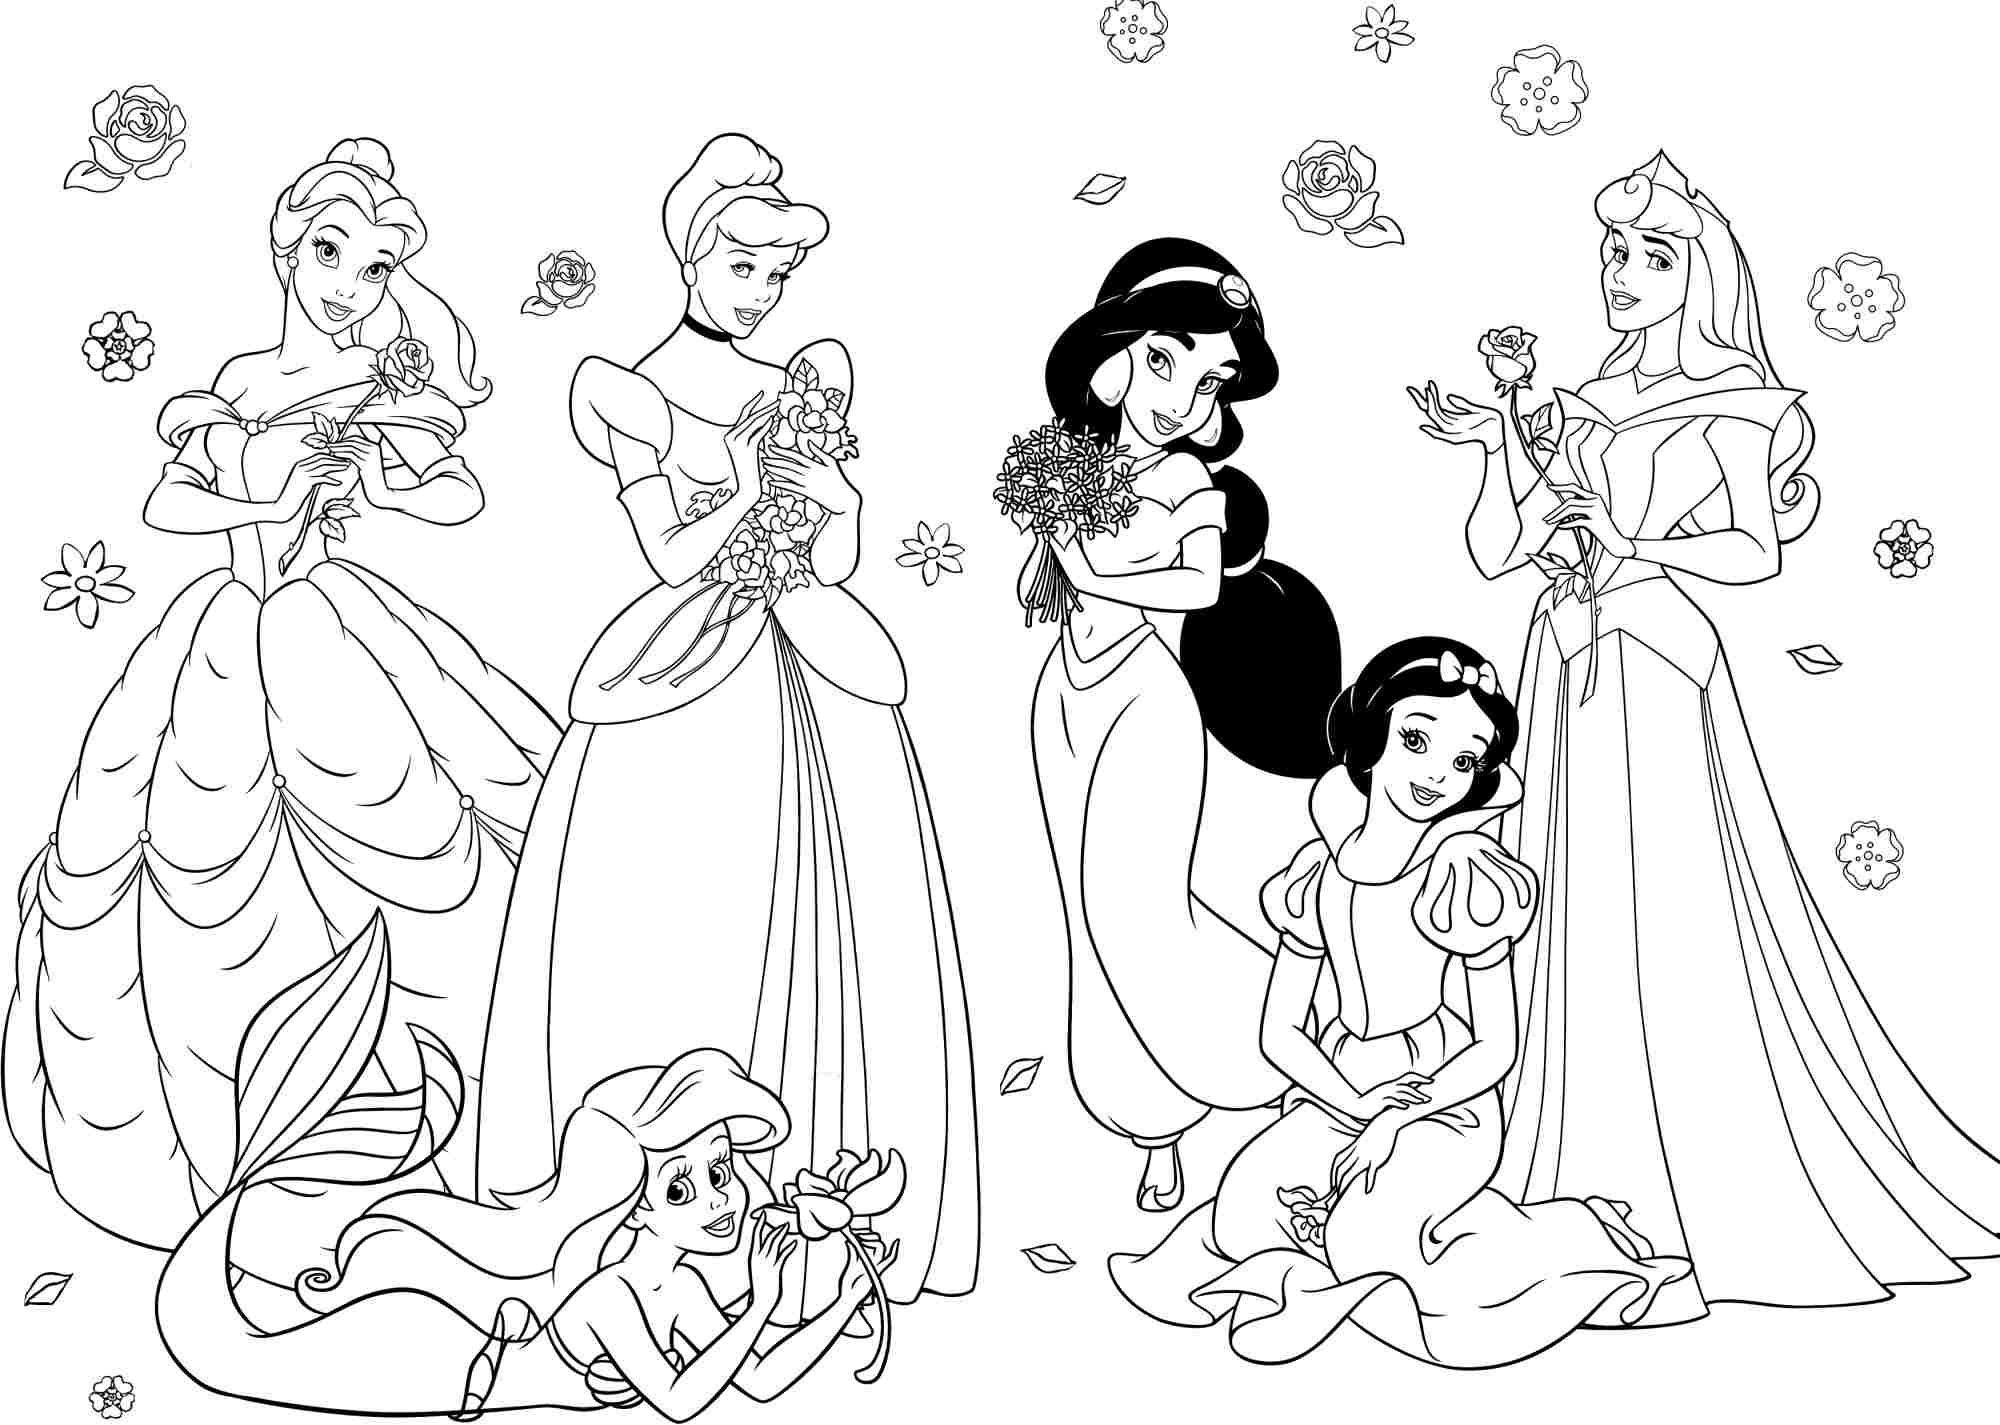 Wonderful Princess Coloring Pages For Girls   Free Large Images